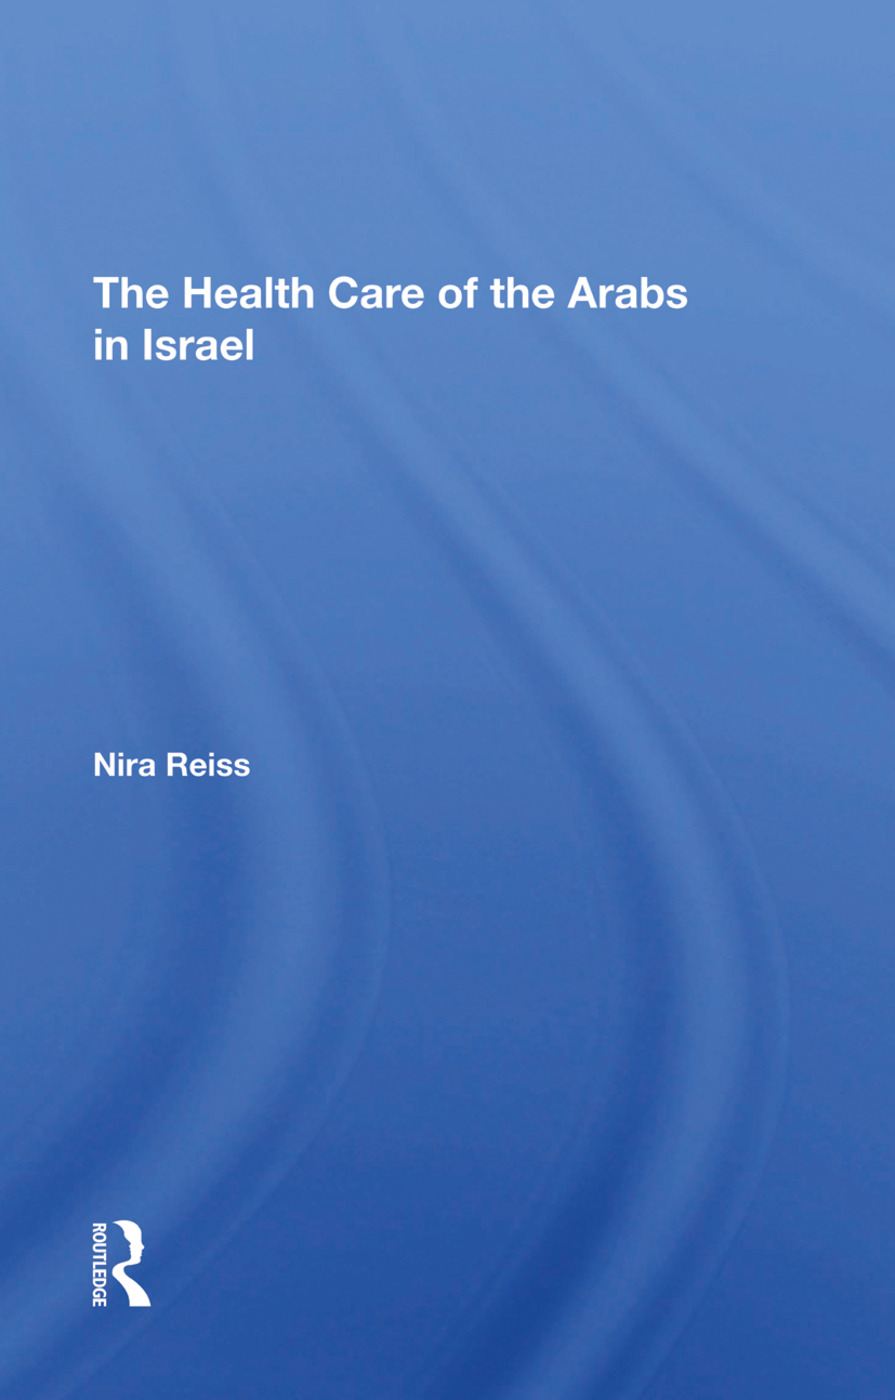 The Health Care of the Arabs in Israel